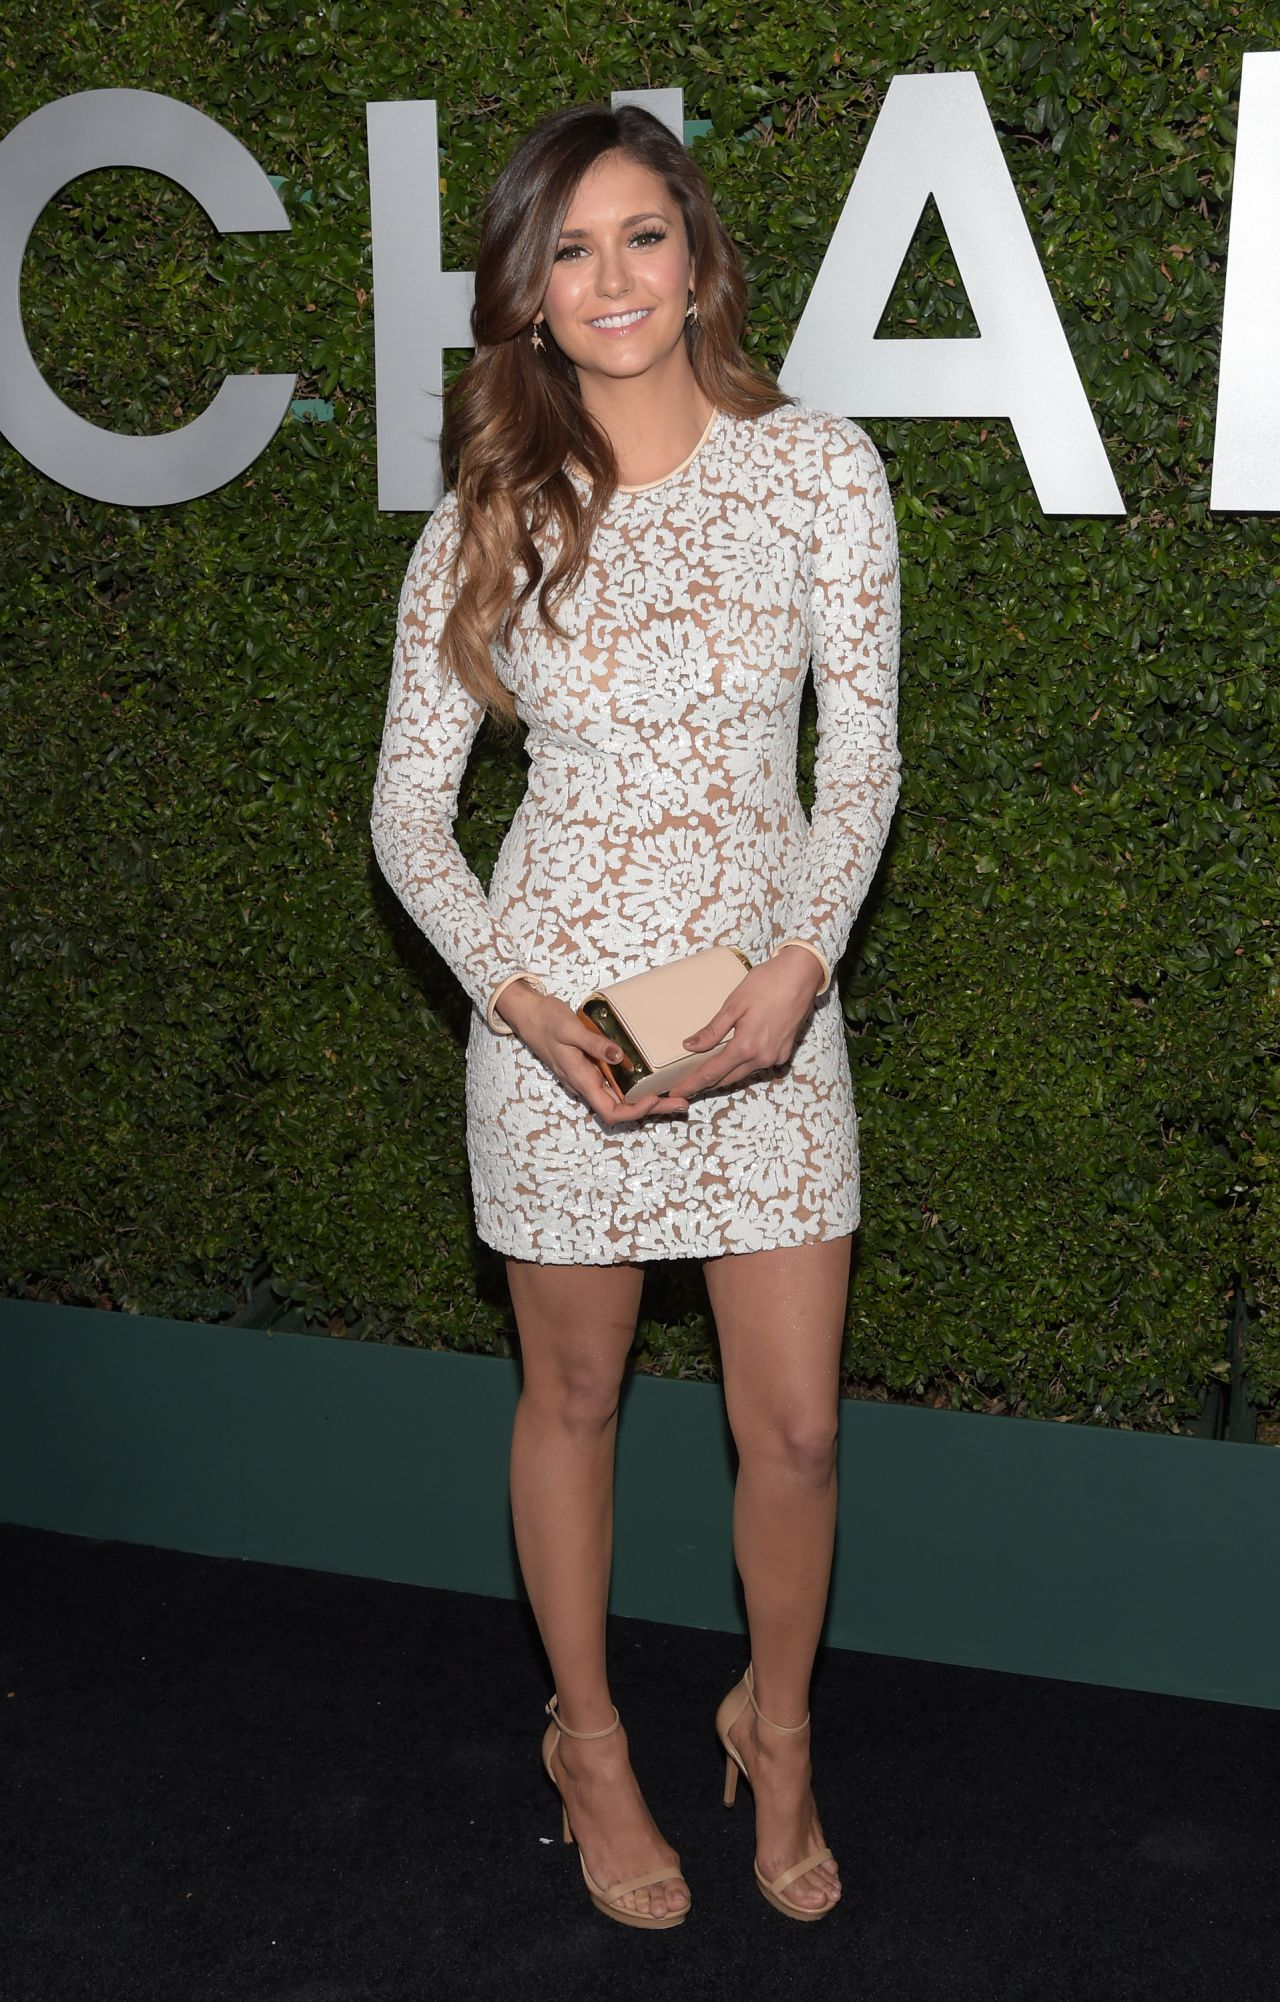 Nina Dobrev – Claiborne Swanson Frank's 'Young Hollywood' Book Launch in Beverly Hills